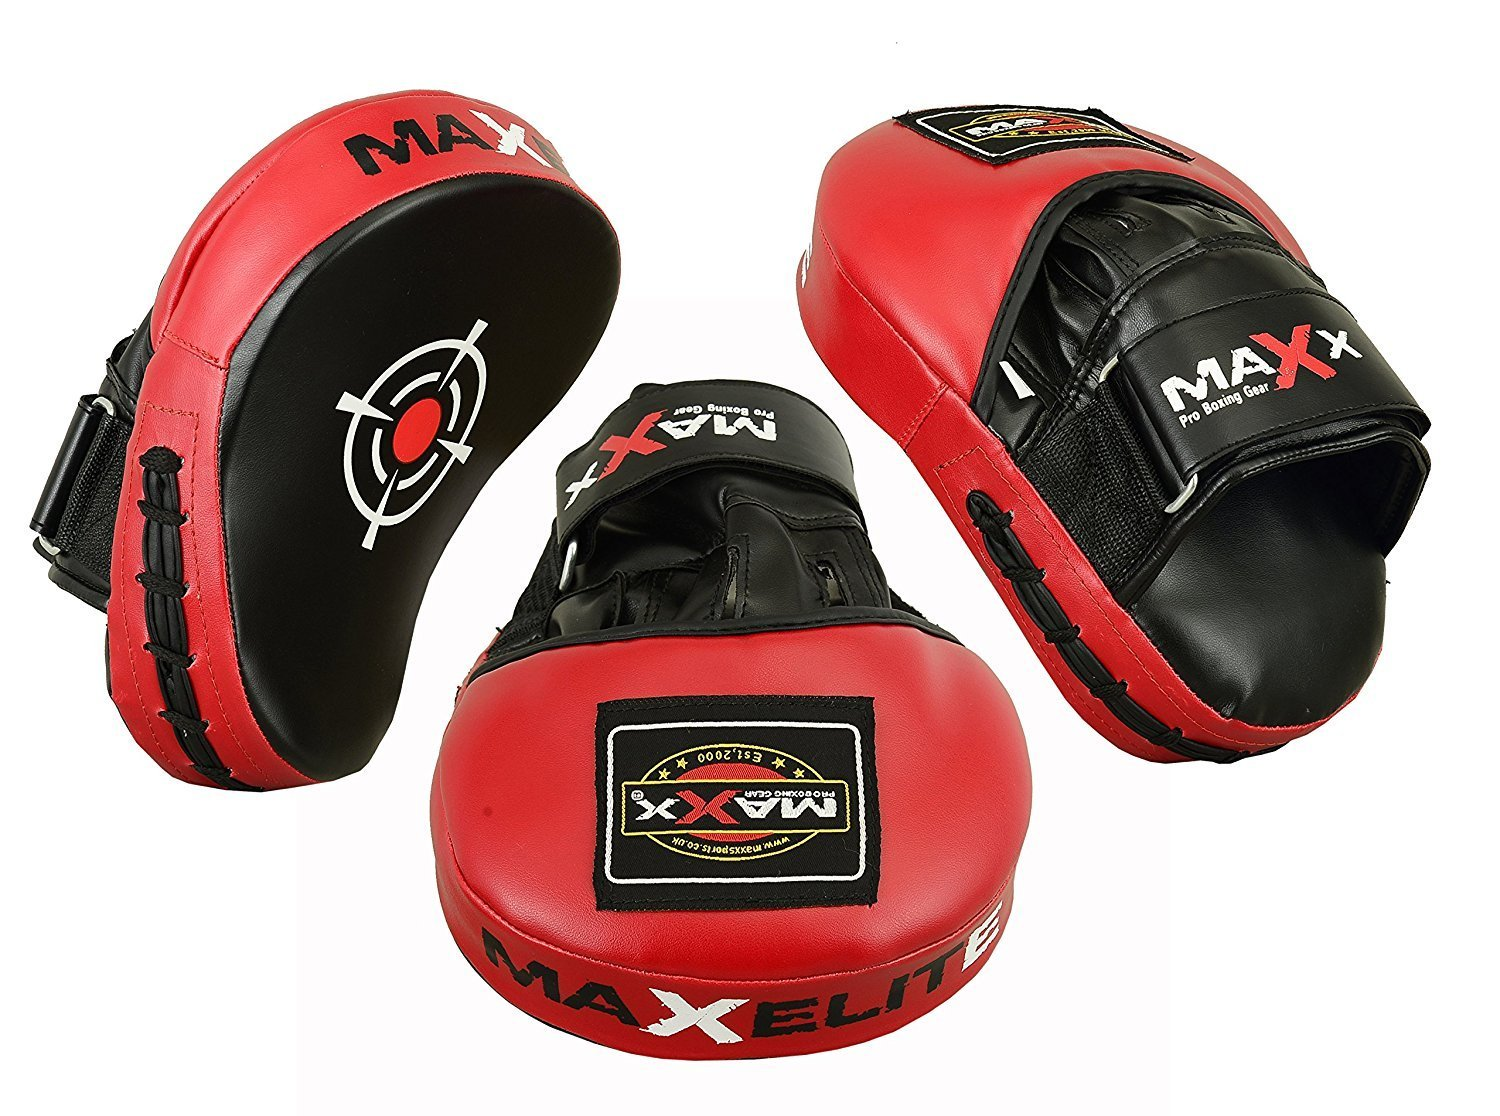 Maxx Rex Leather Curved Focus Pads MMA Boxing PINK , Black White . Red . Blue Martial ART Kick Boxing One Size) SPORTSMAXX LTD